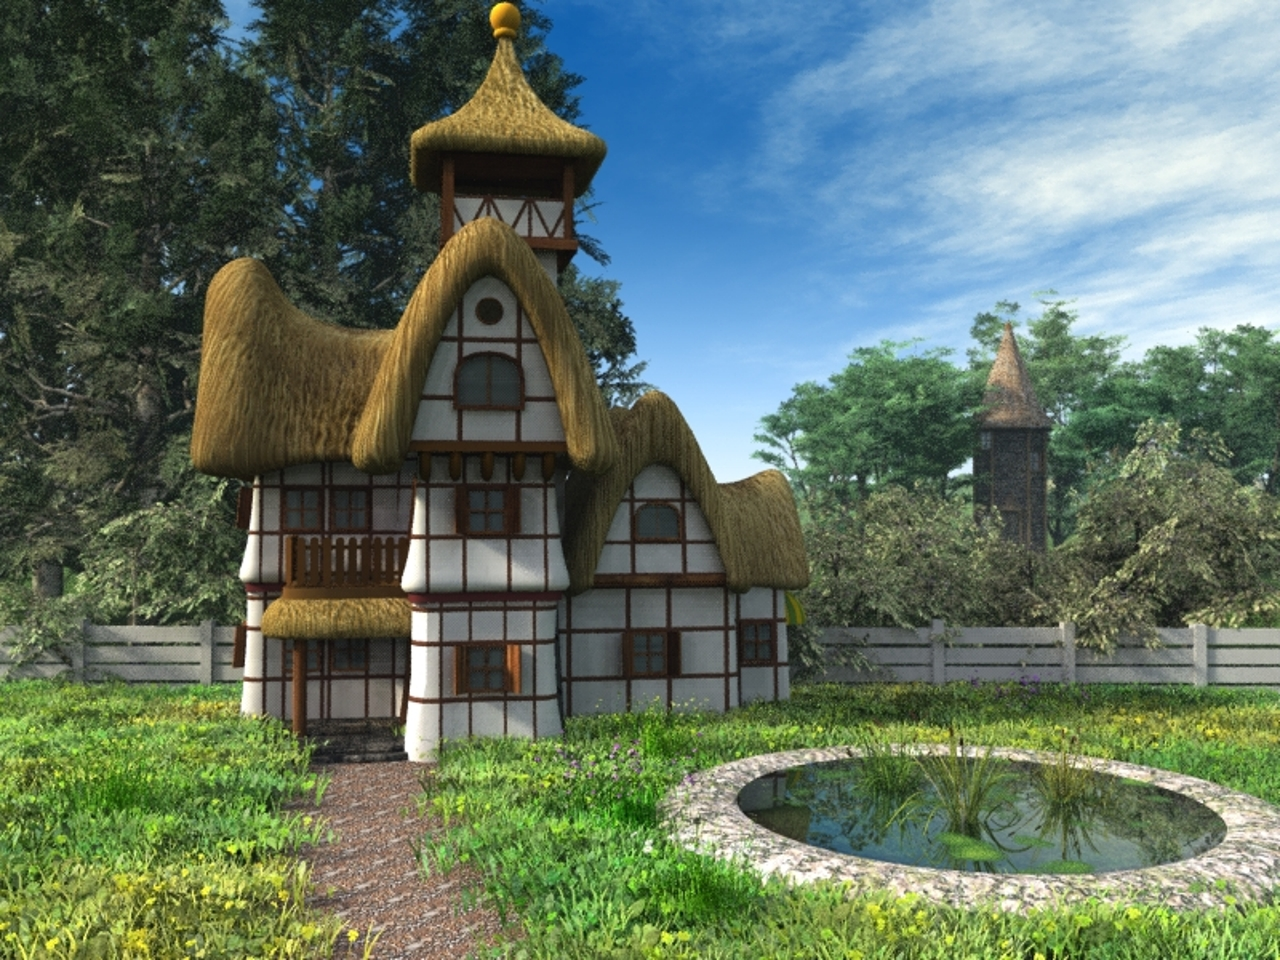 Tiny English Cottage House Plans Fairytale Cottage By Hbkerr On Deviantart